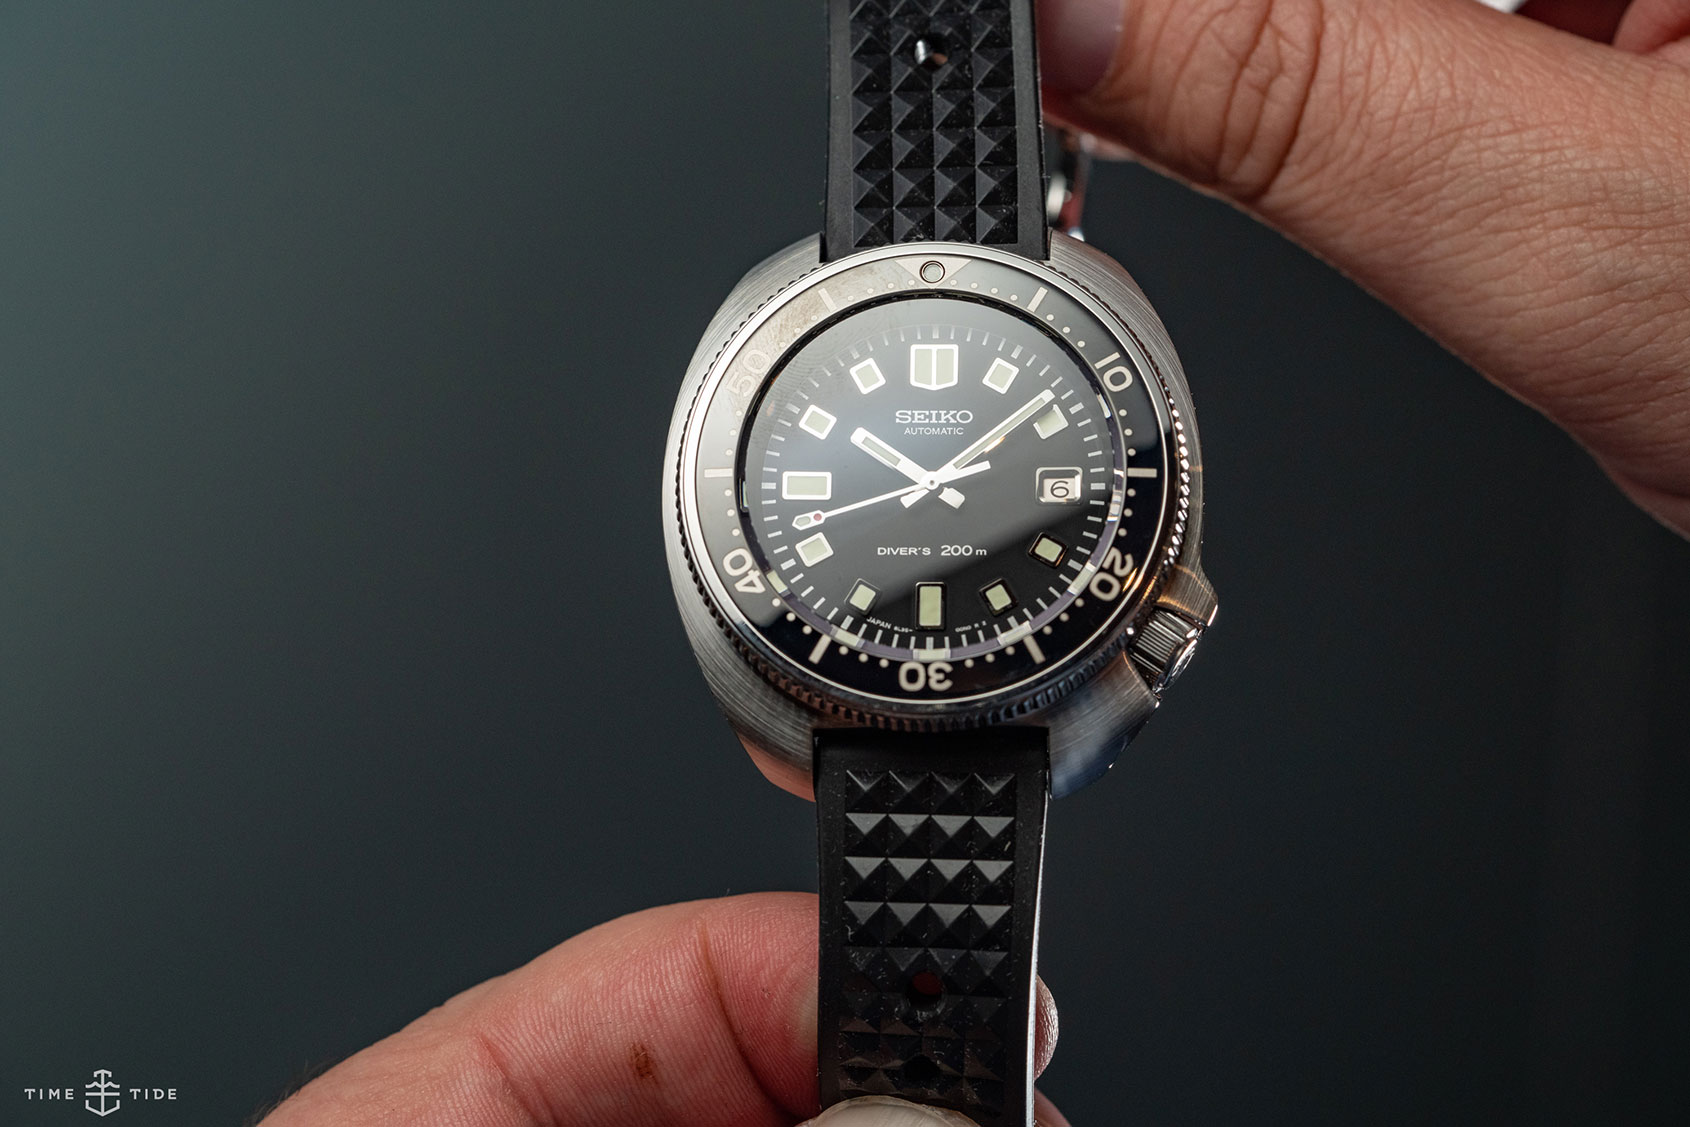 HANDS-ON: The Seiko Diver's Re-creation Limited Edition SLA033 | Time and Tide Watches